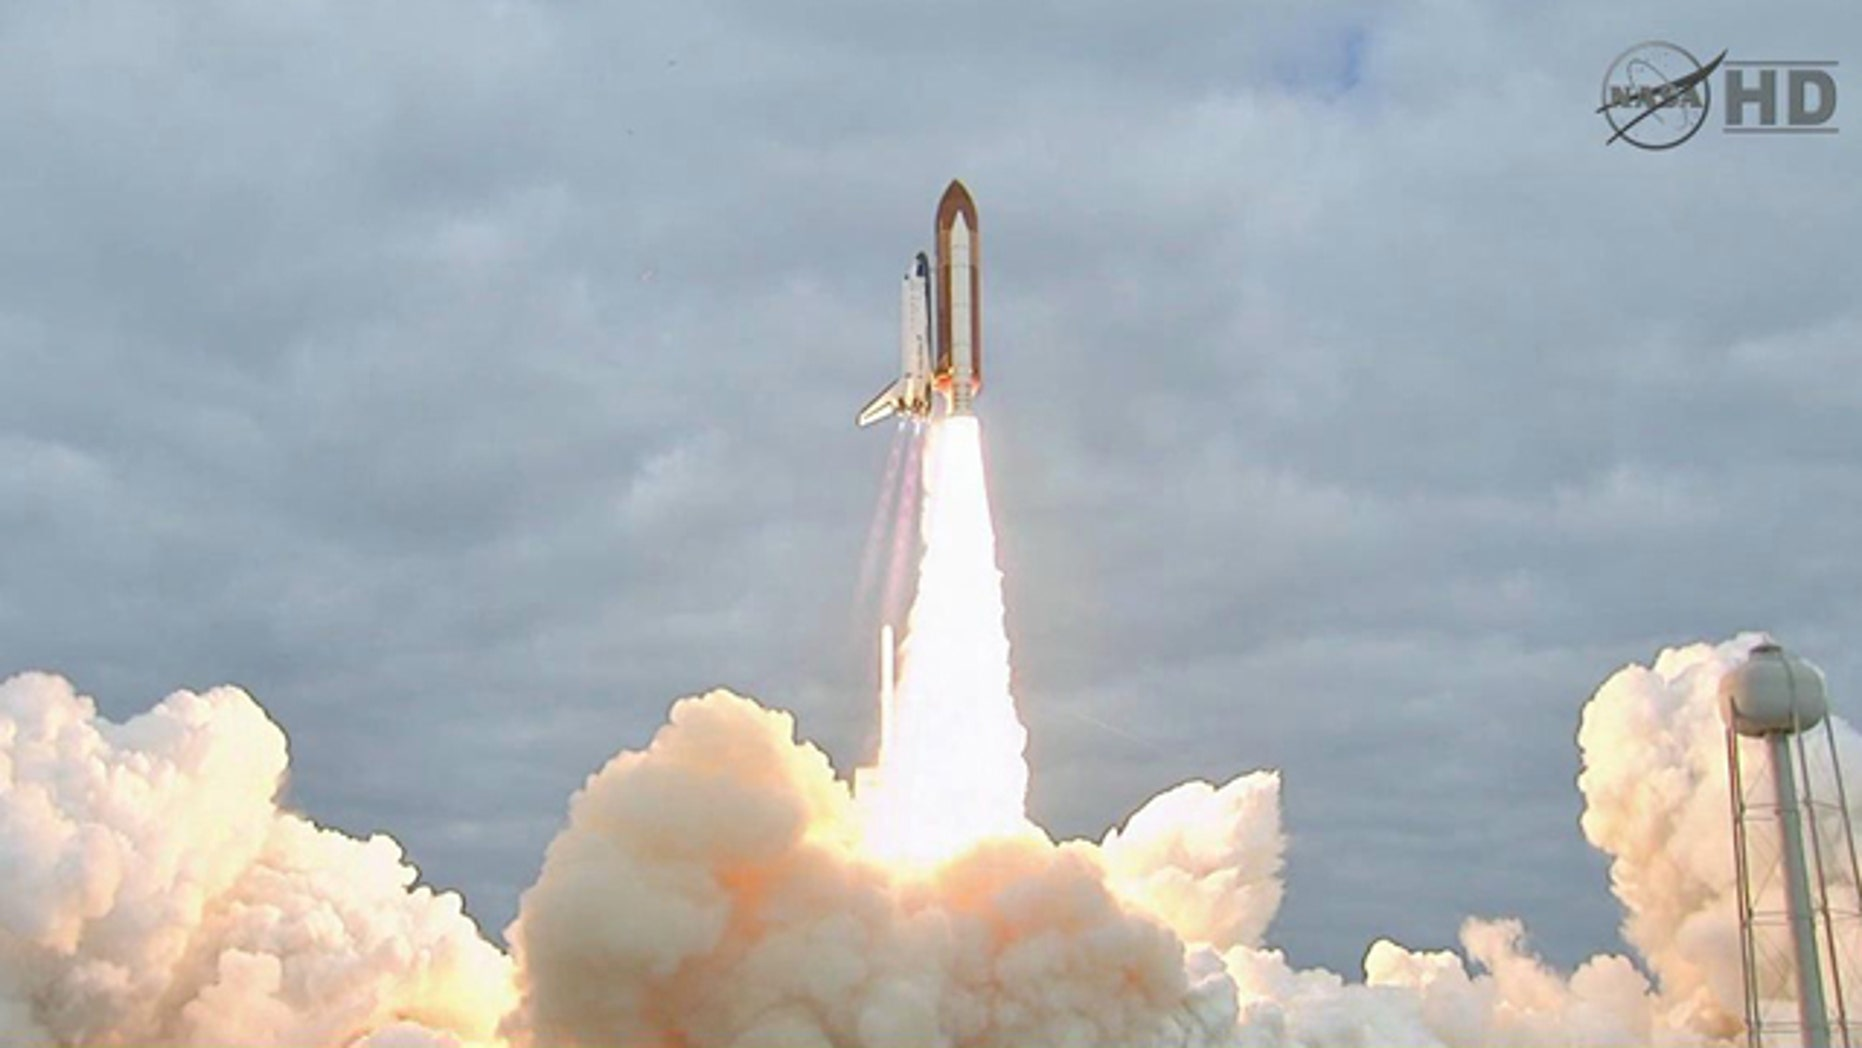 May 16, 2011: Space shuttle Endeavour blasts off flawlessly on its final flight from Kennedy Space Center.